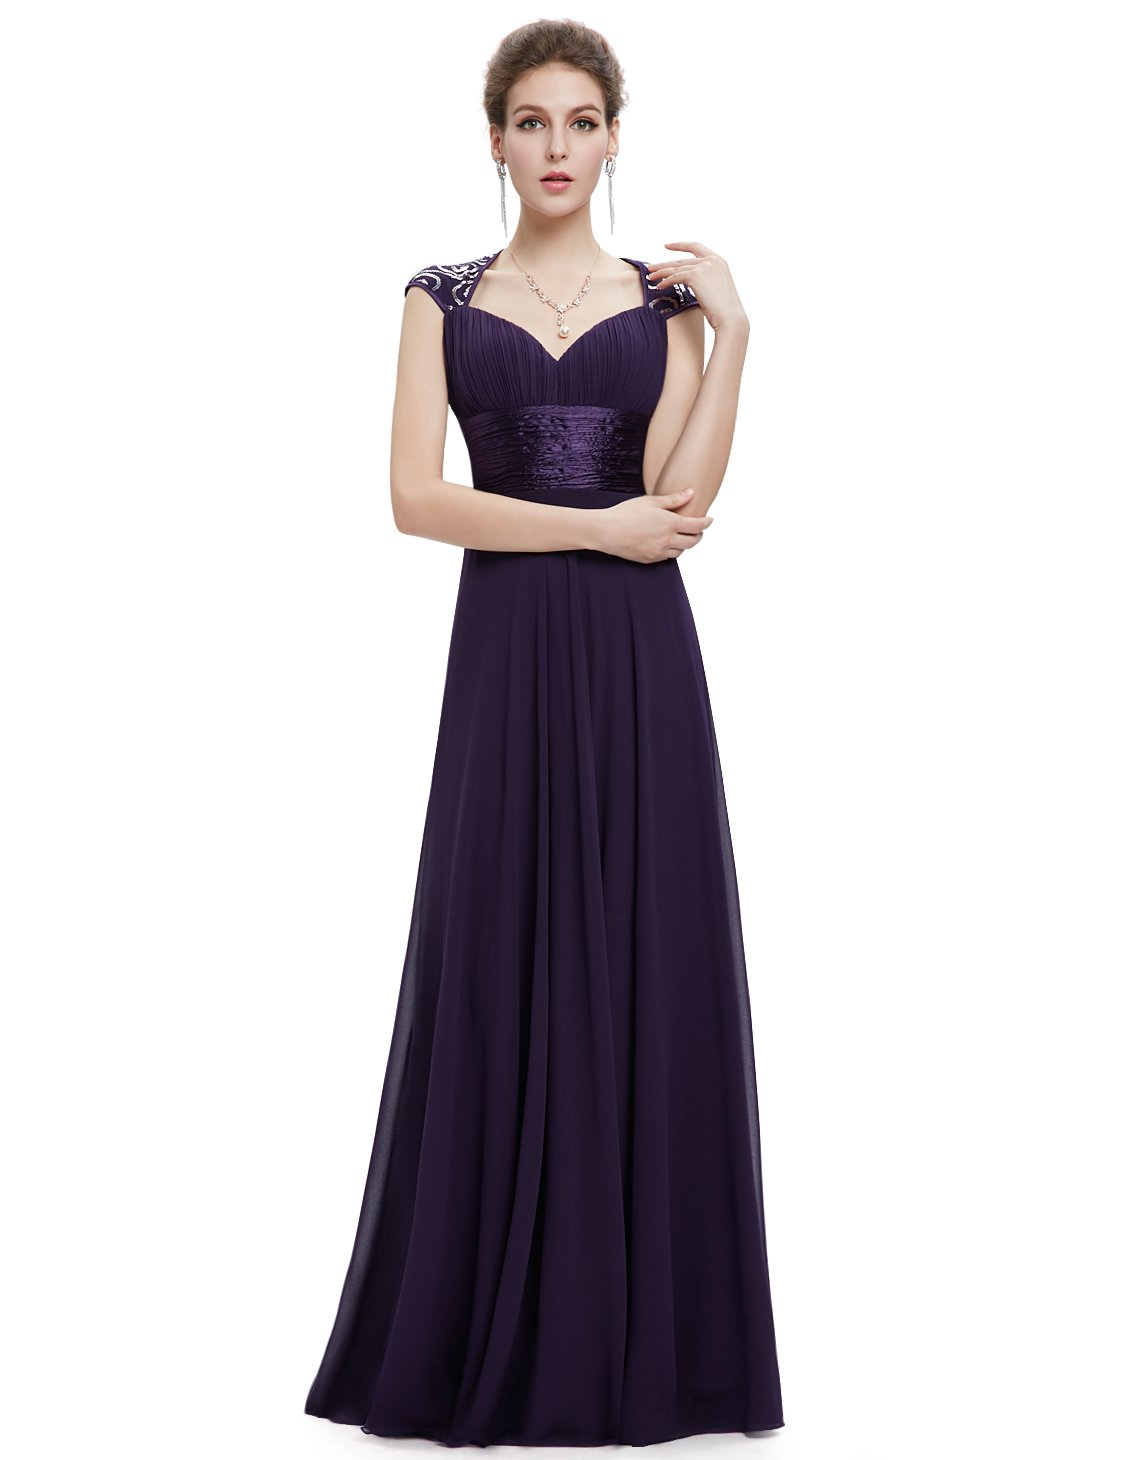 Ever-Pretty Womens Sleeveless V Neck Open Back Long Evening Gown 14 US Purple by Ever-Pretty (Image #4)